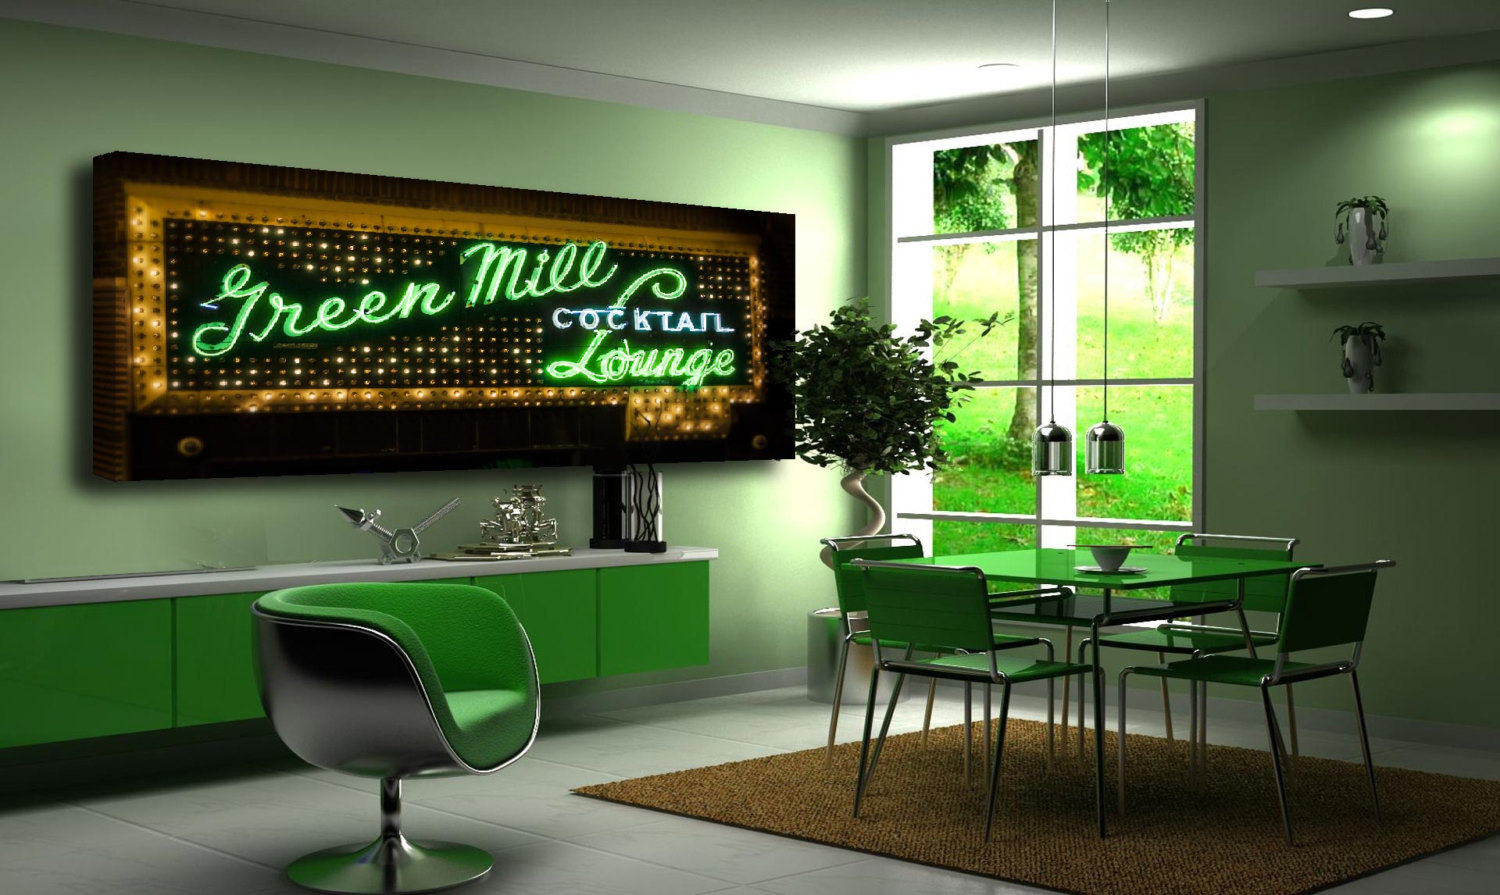 Chicago Photography, Wall Art, Green, Photo, Green Mill, Green, Canvas